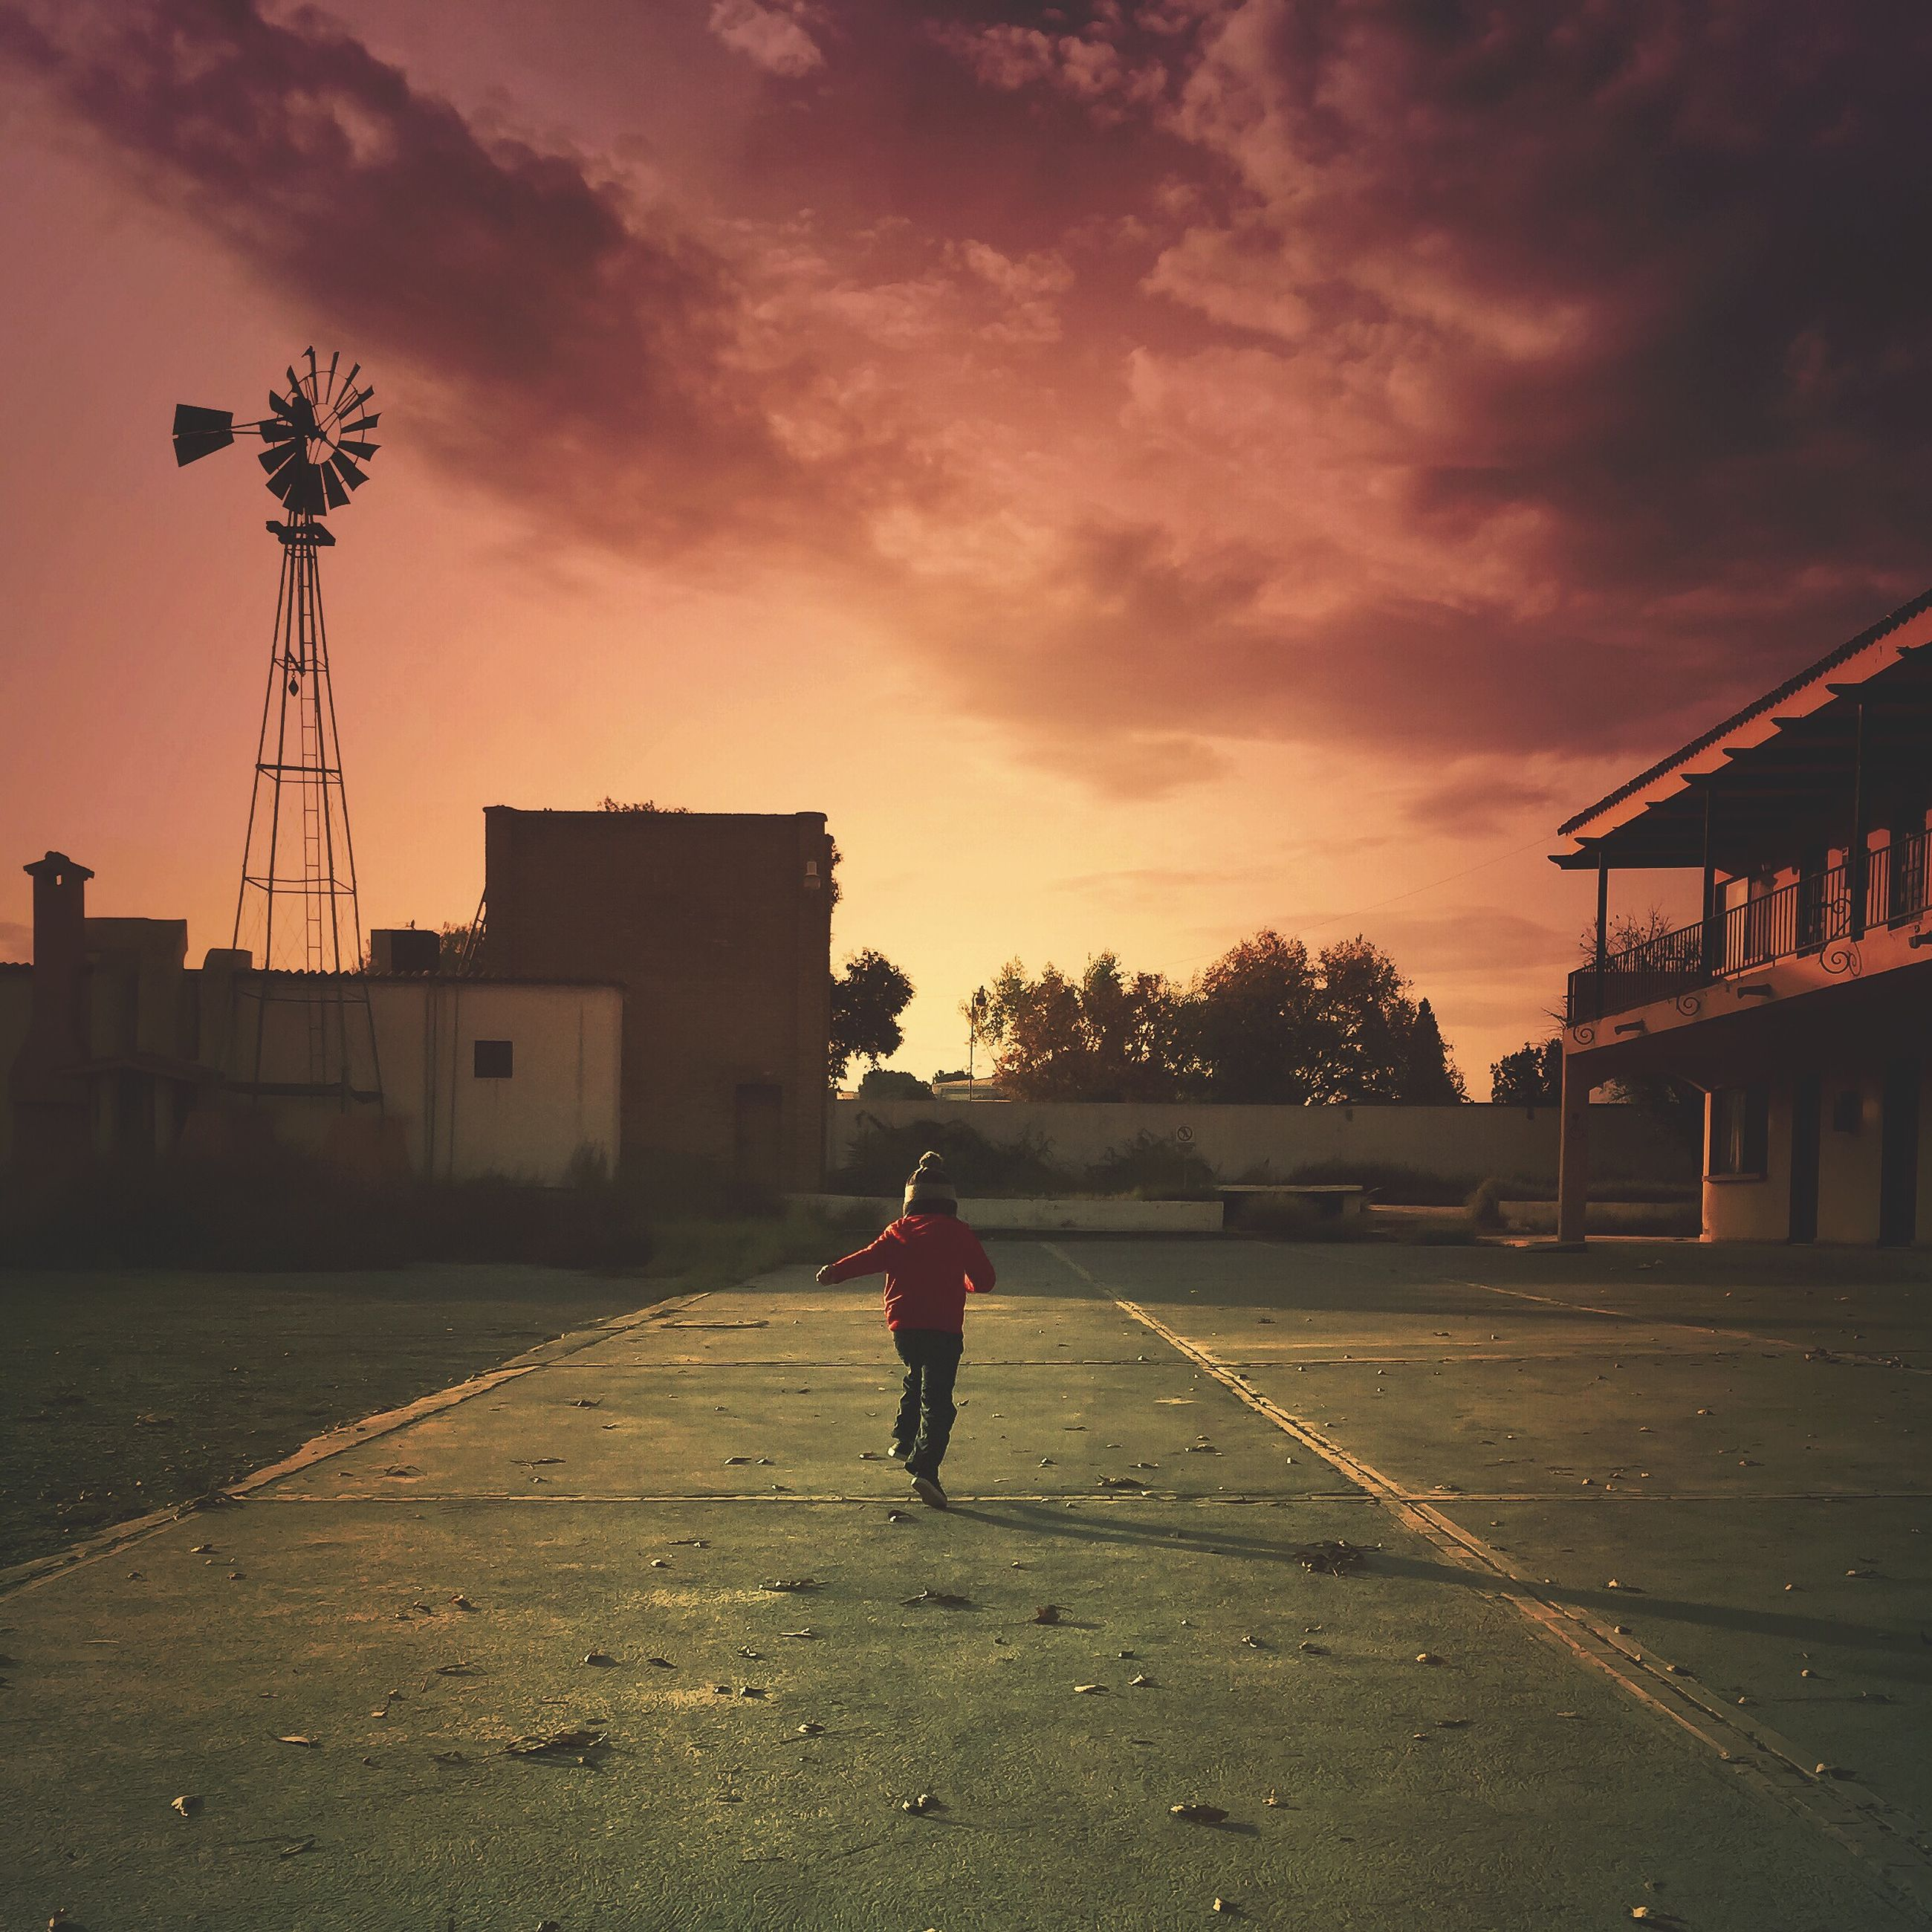 building exterior, sky, architecture, built structure, sunset, full length, lifestyles, street, walking, cloud - sky, rear view, leisure activity, men, road, the way forward, cloud, house, outdoors